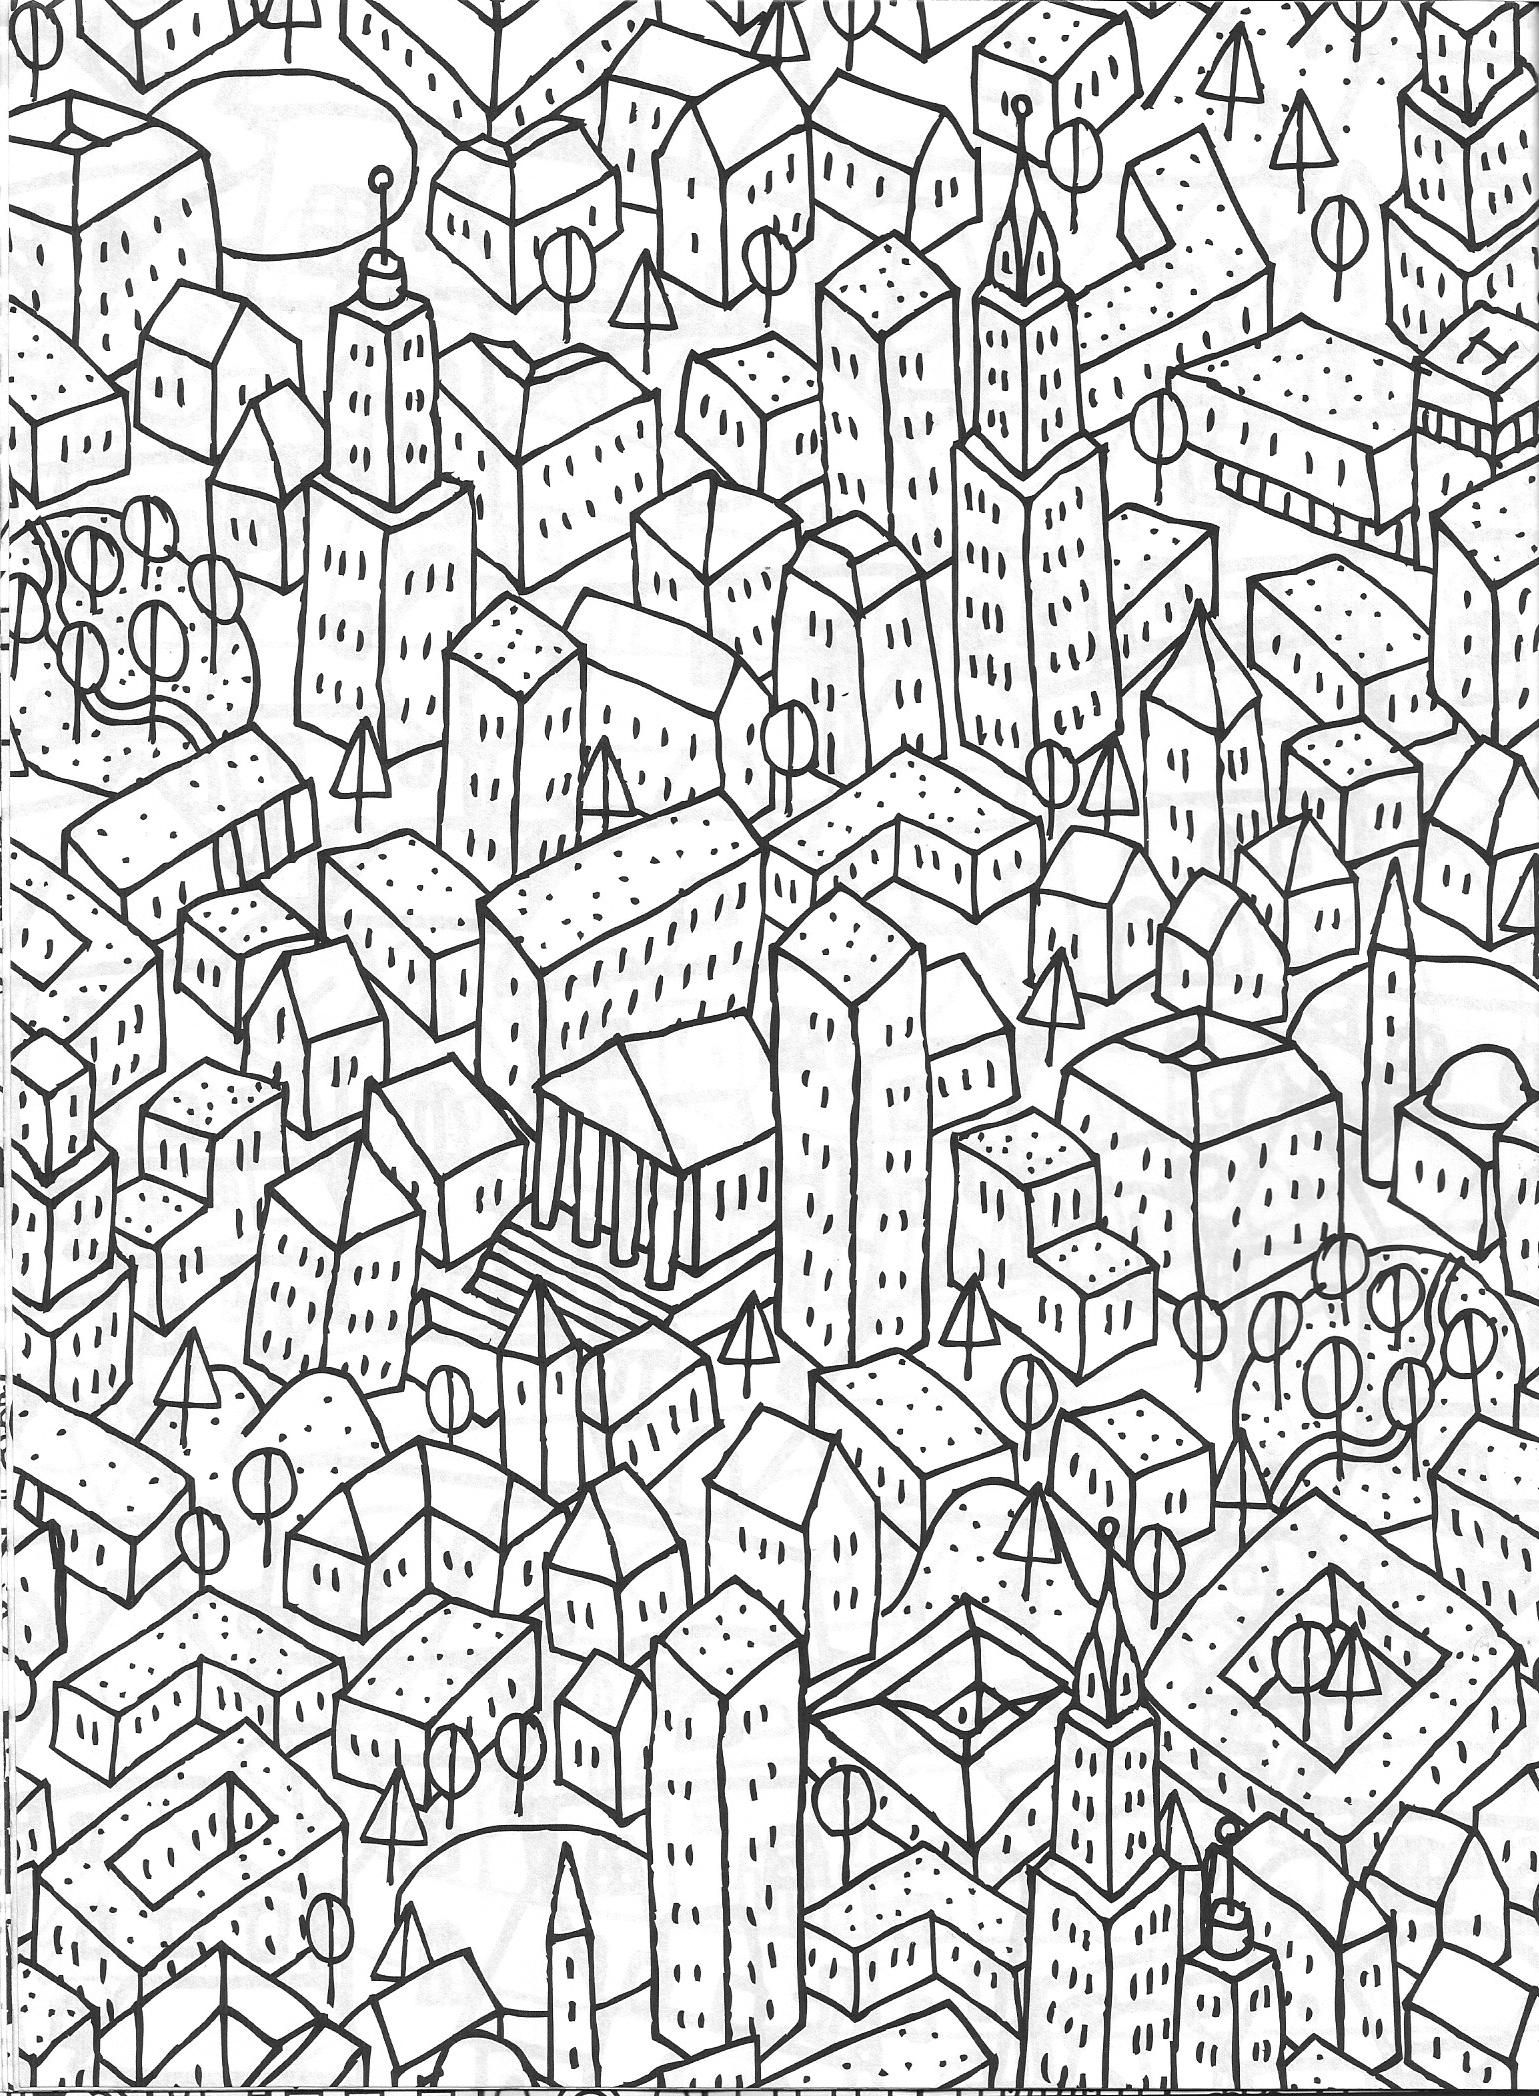 Cityscape Coloring Page Vida Simples Cidade Dos Sonhos Coloring Pages Coloring Books Mandala Coloring Pages